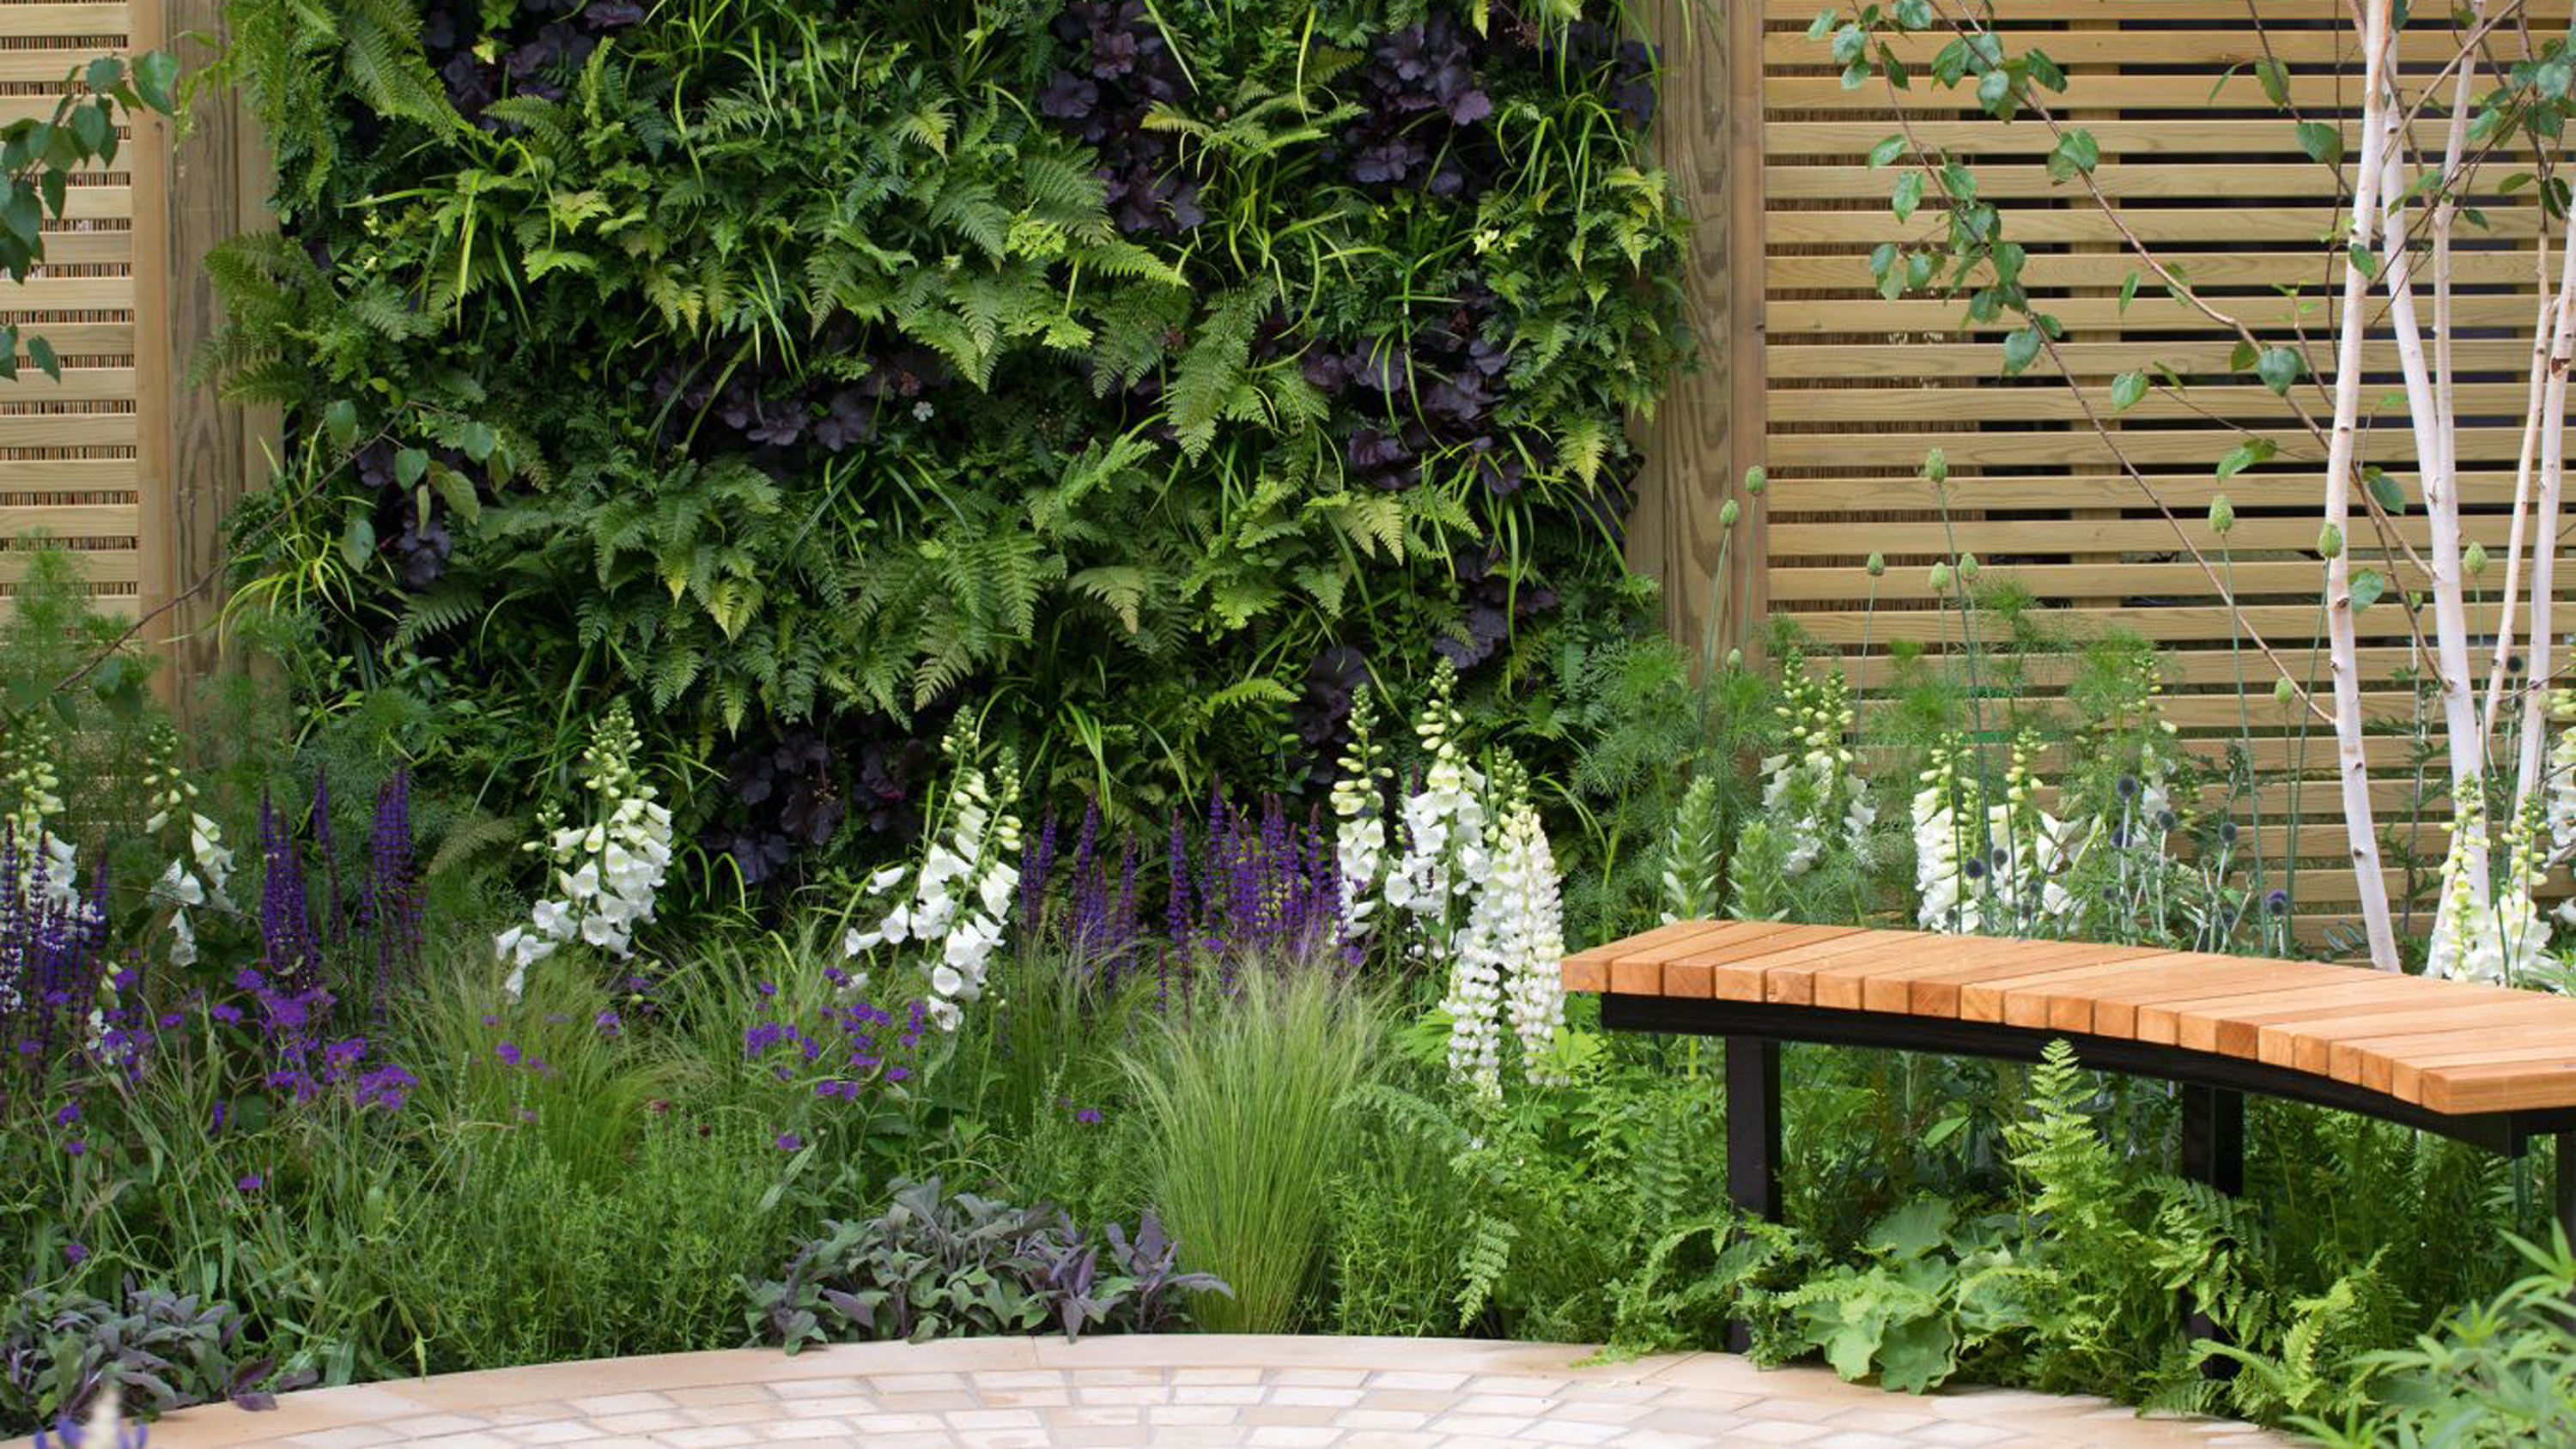 How To Make A Living Wall Create Vertical Planting To Maximise Your Space Gardeningetc